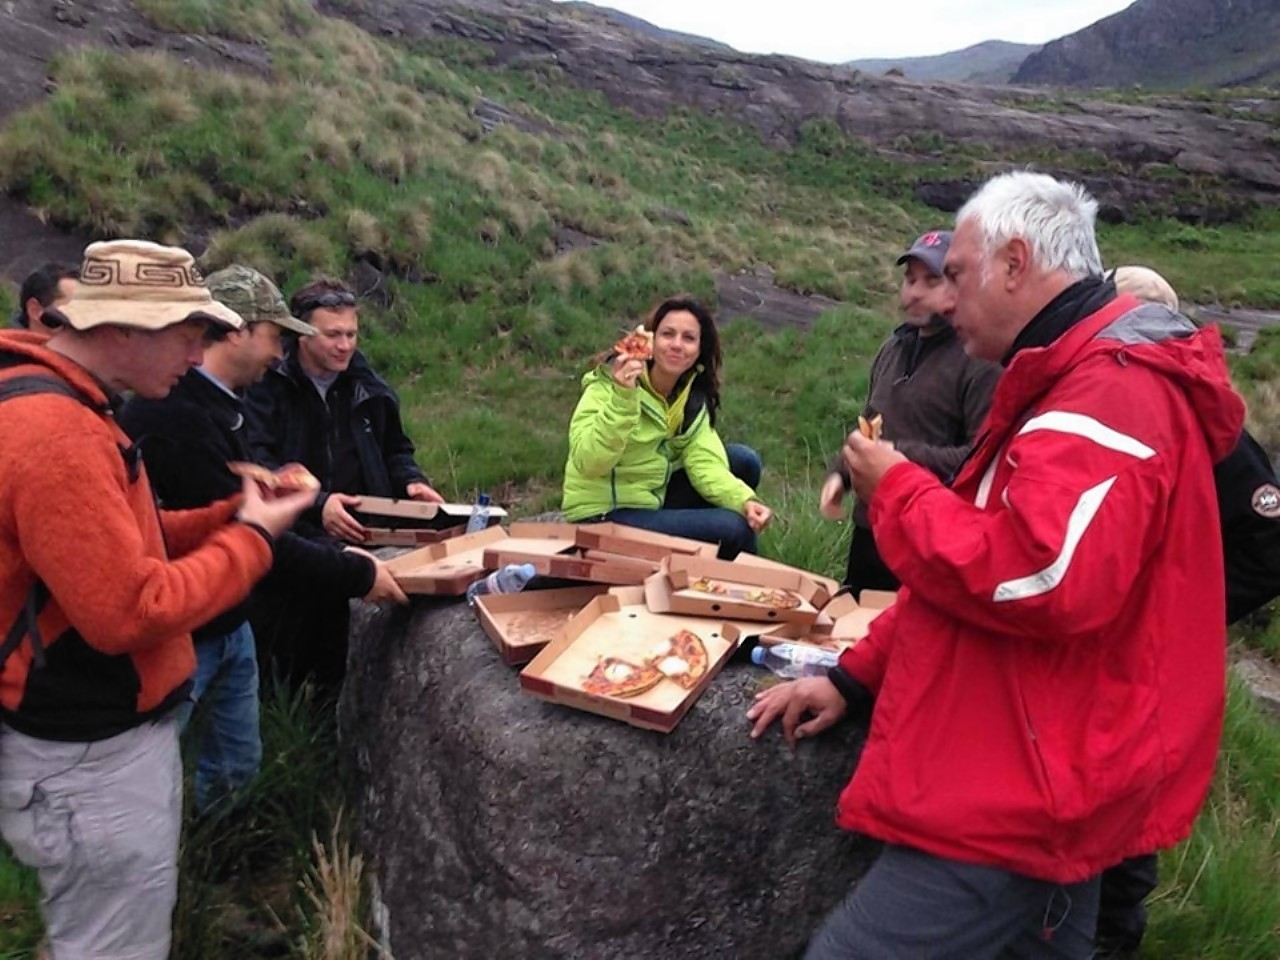 Julia Bradbury with the pizza she had ferried to the island